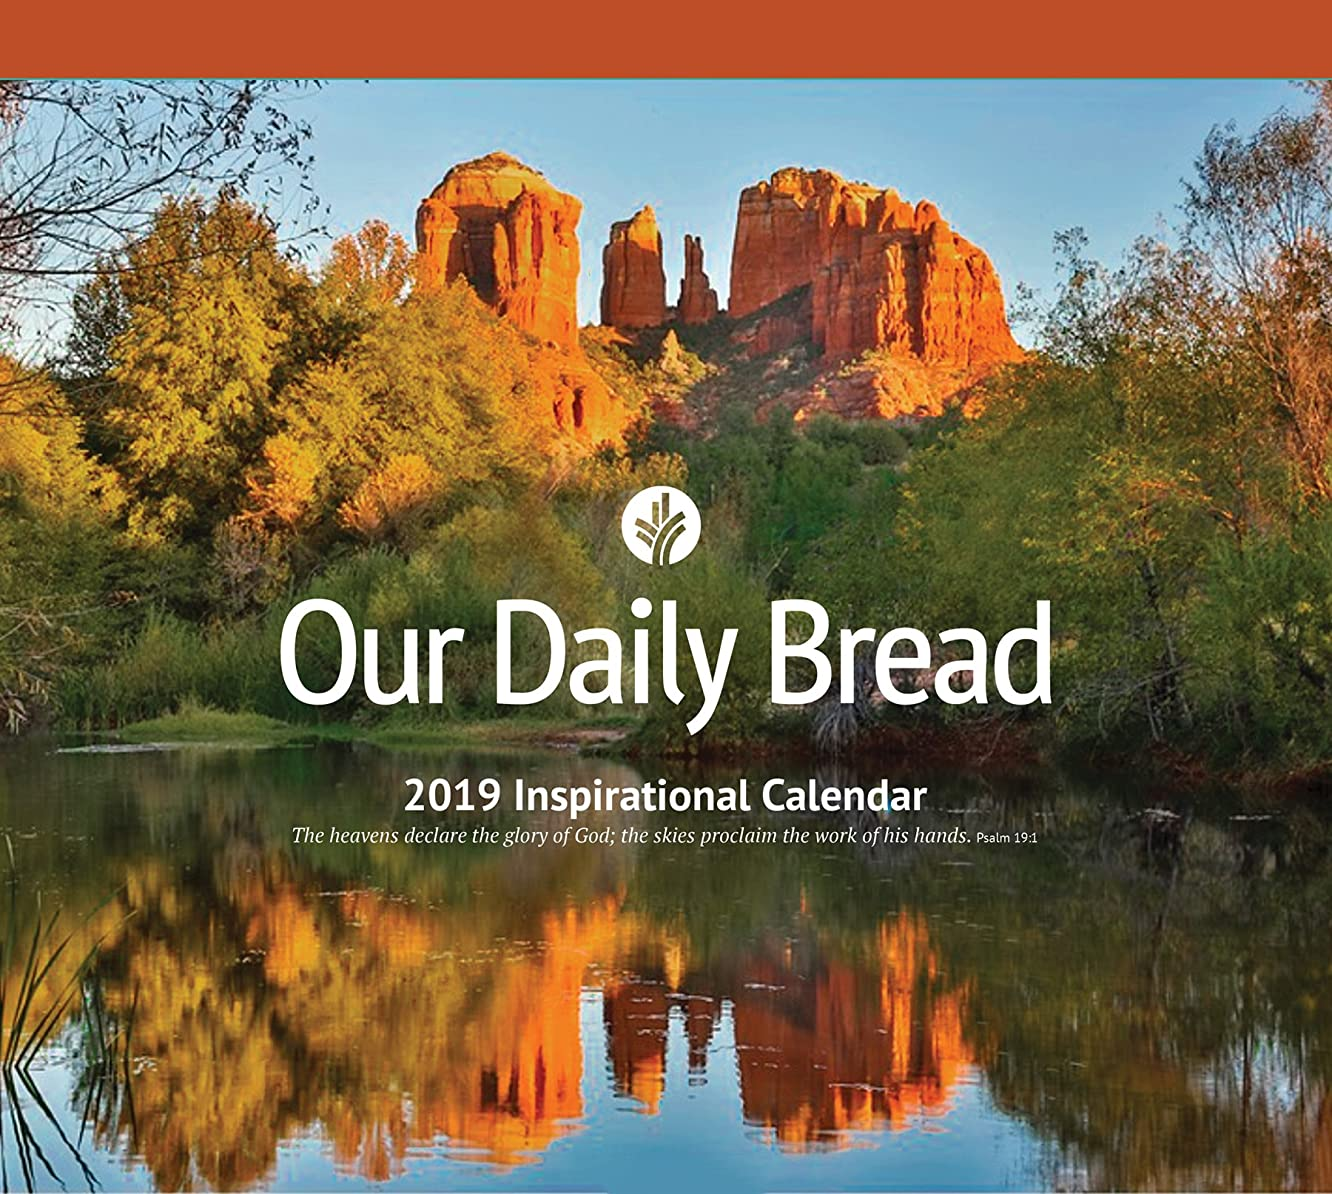 Our Daily Bread 2019 Wall Calendar